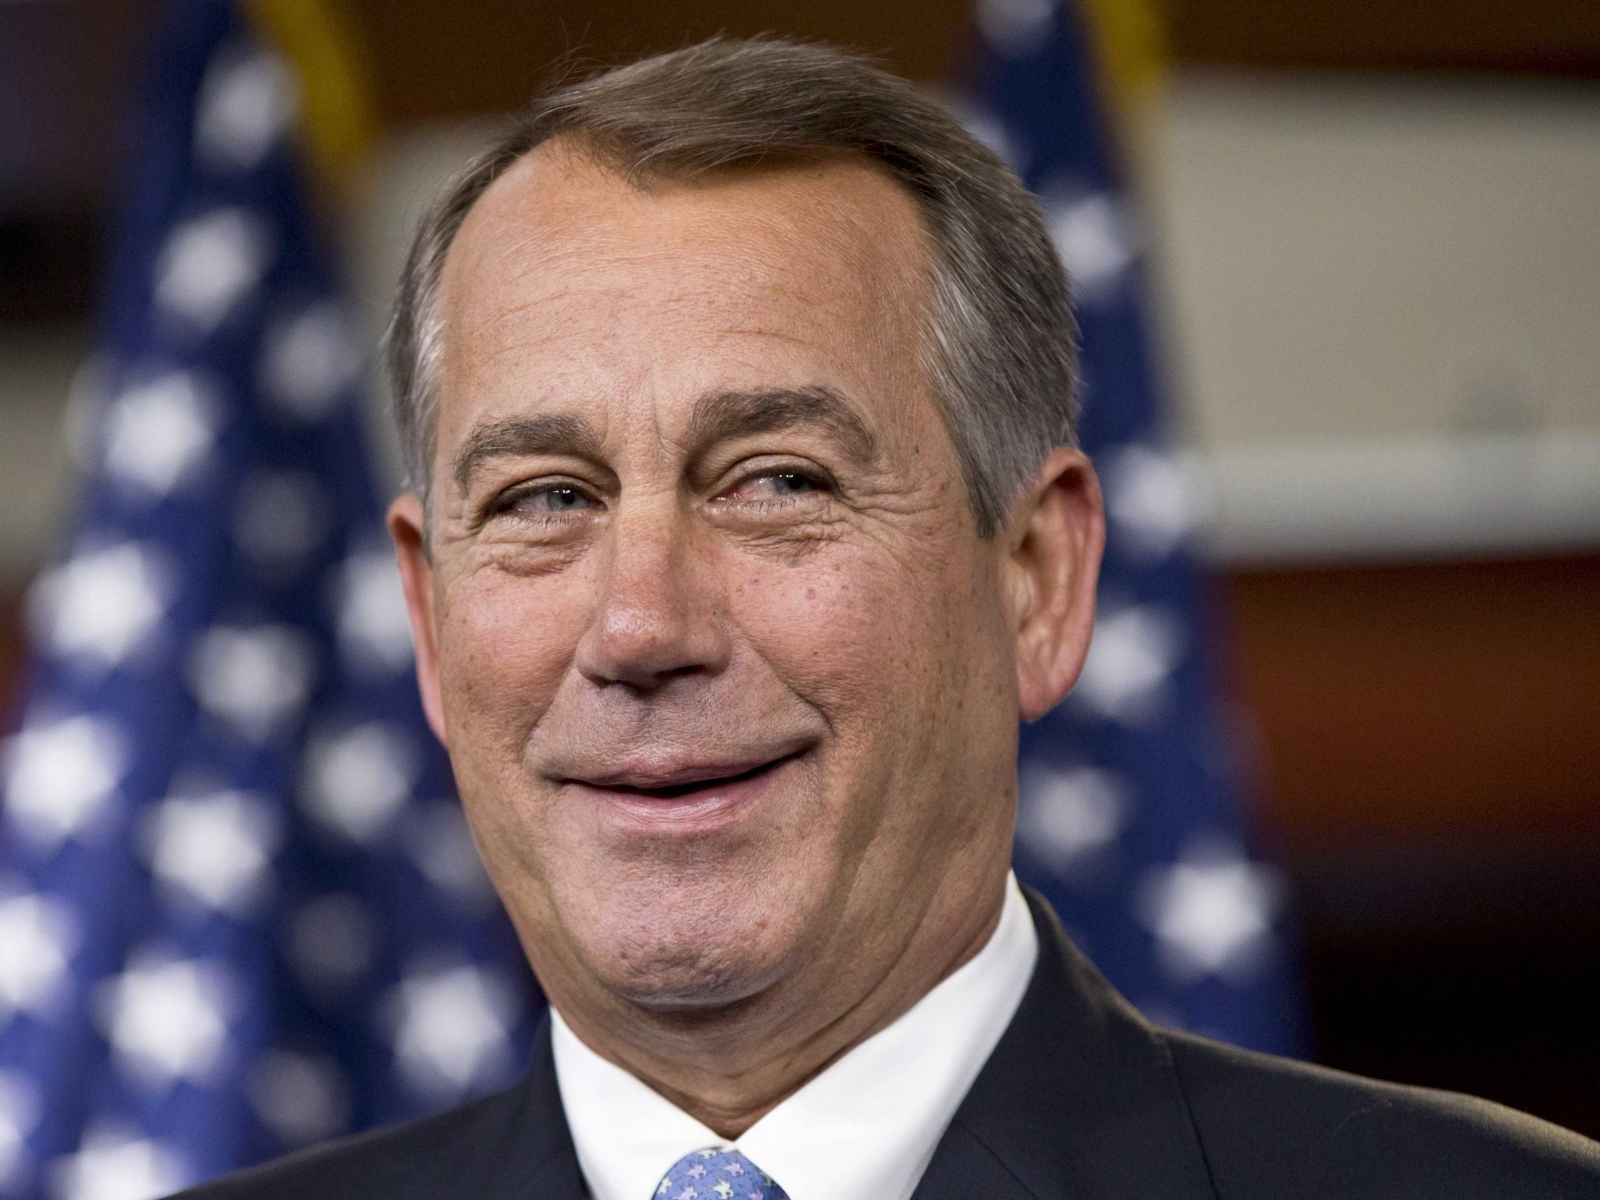 John Boehner voices concerns about Obama's Isis strategy